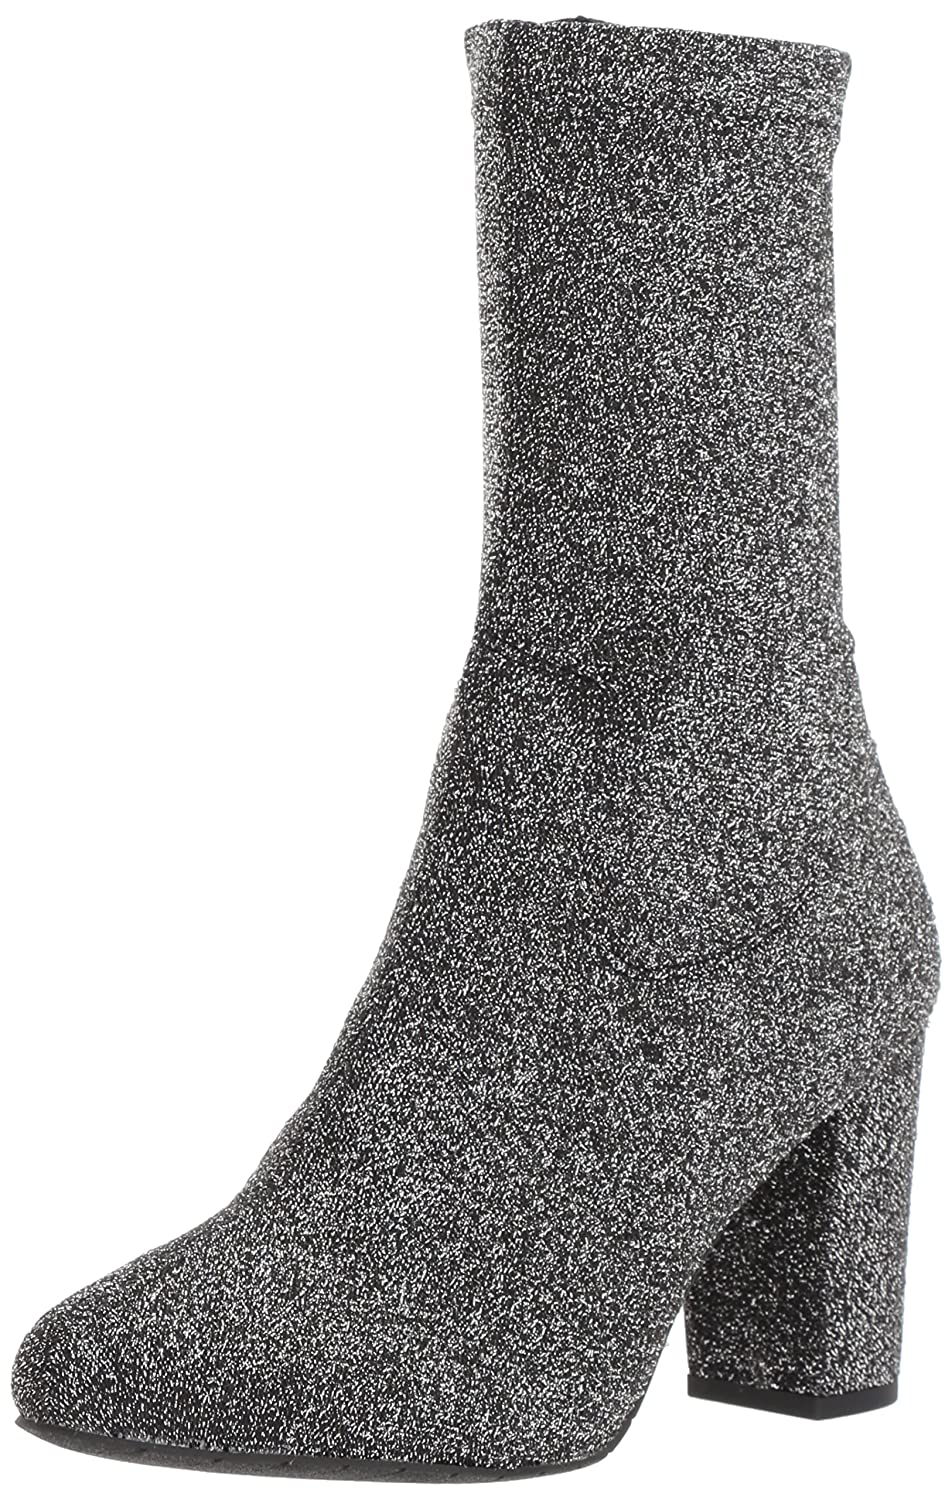 Kenneth Cole New York Women's Alyssa Stretch Shaft Heel Ankle Boot B073XL41YZ 8.5 B(M) US|Pewter